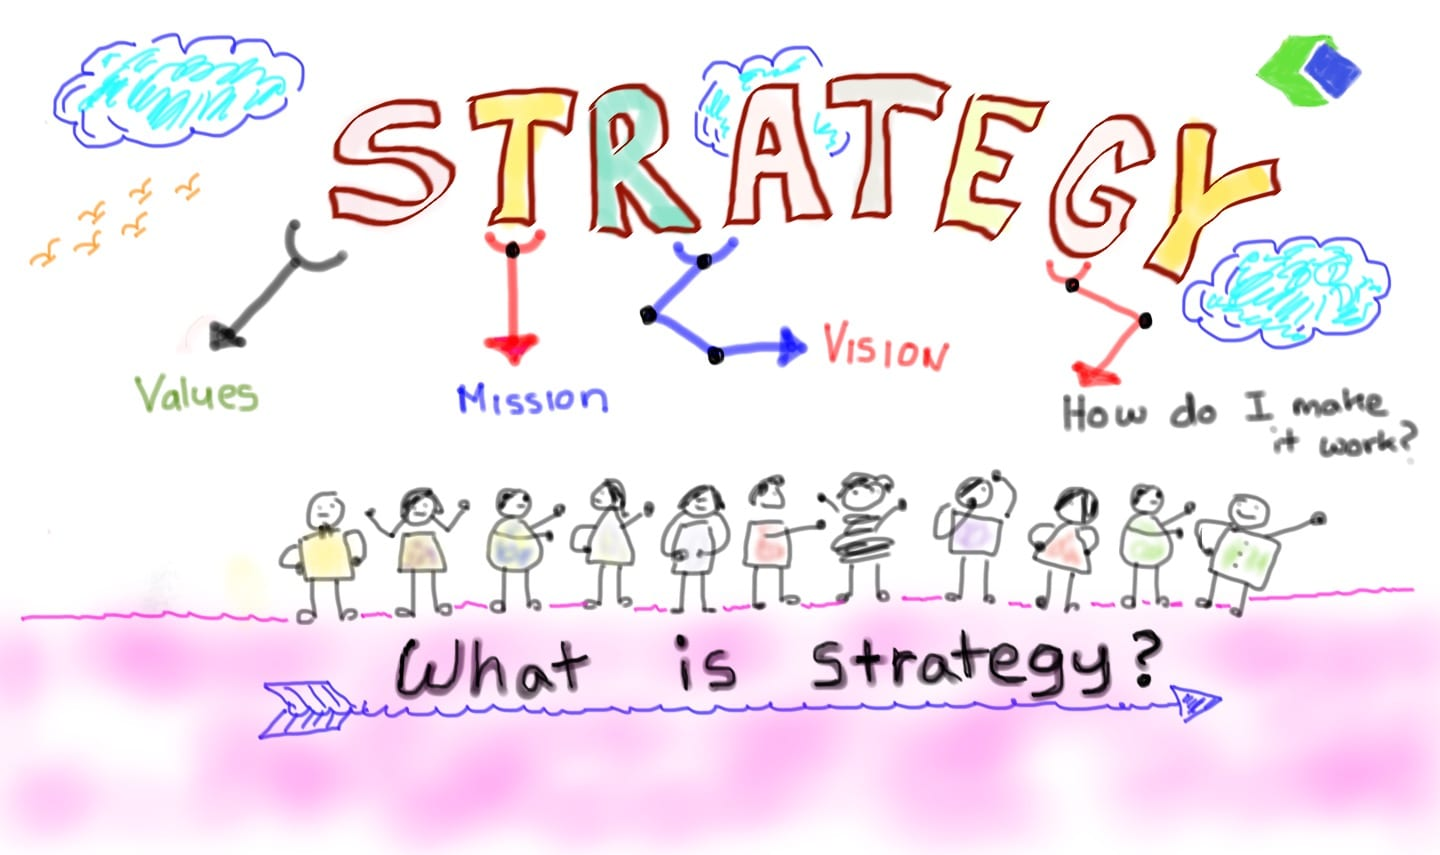 Strategy planning Singapore